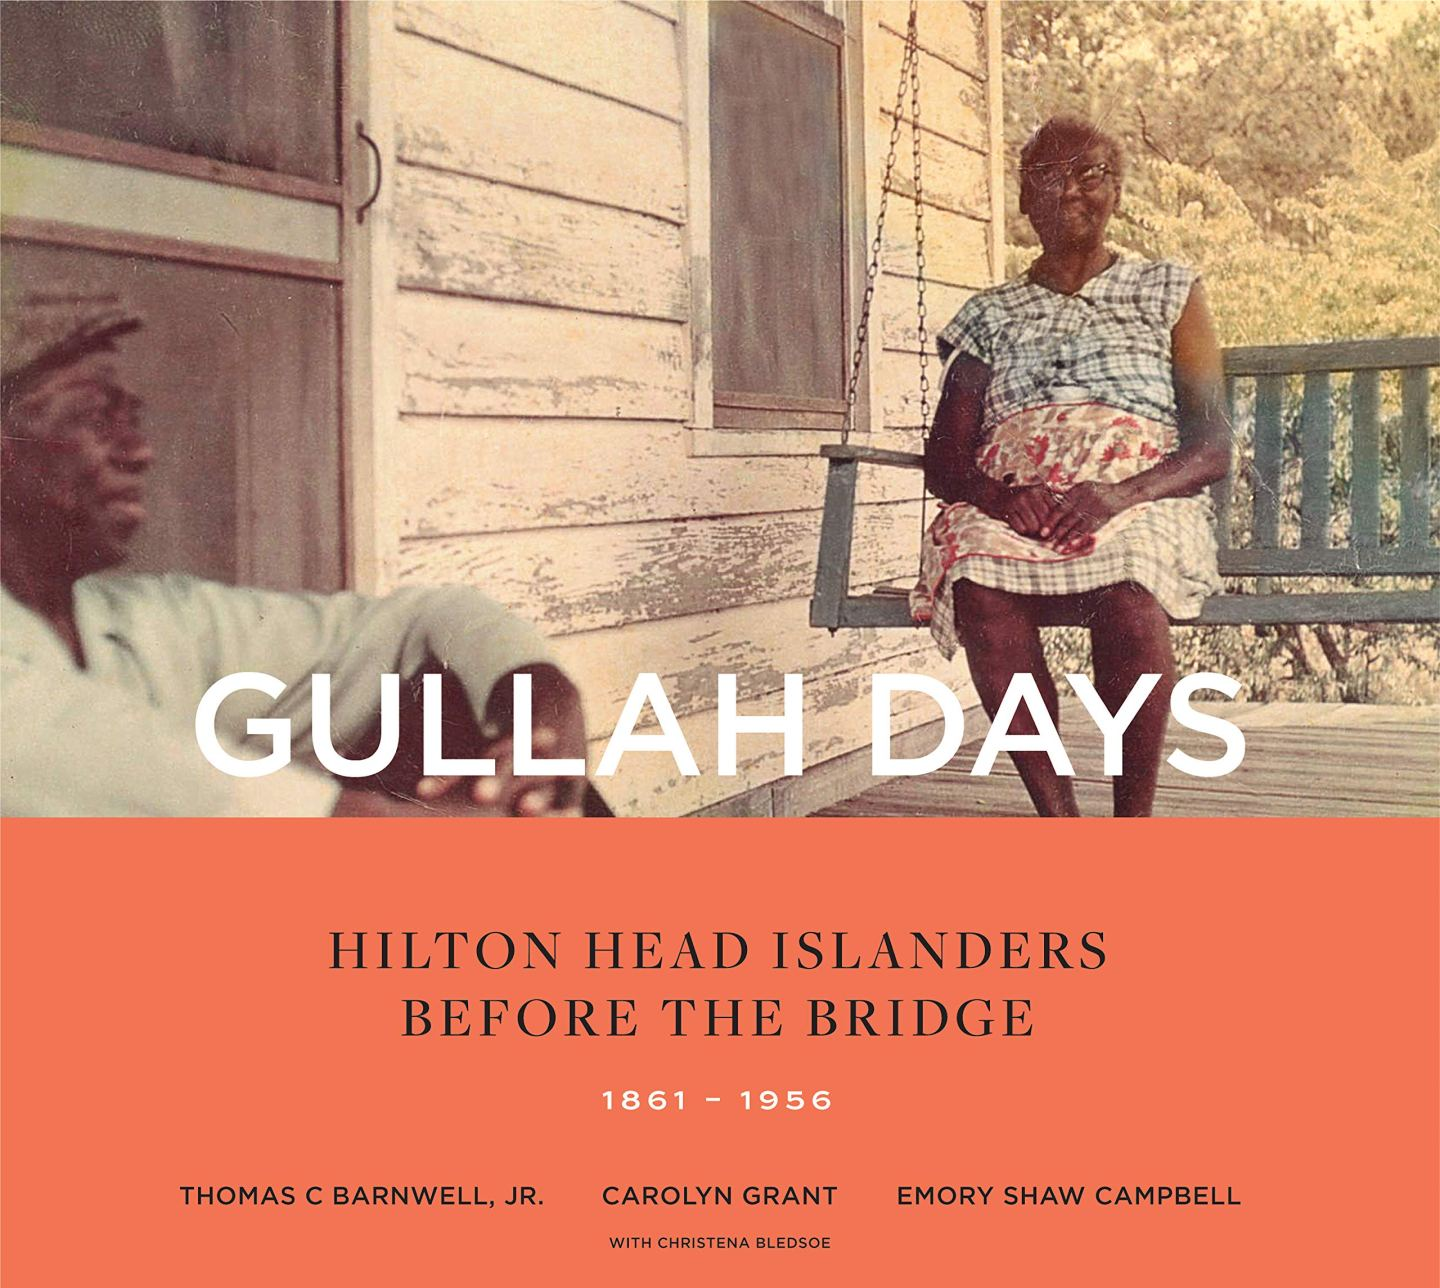 9189FJ3WaKL Southern Heritage: Gullah Books To Add To Your Home Library